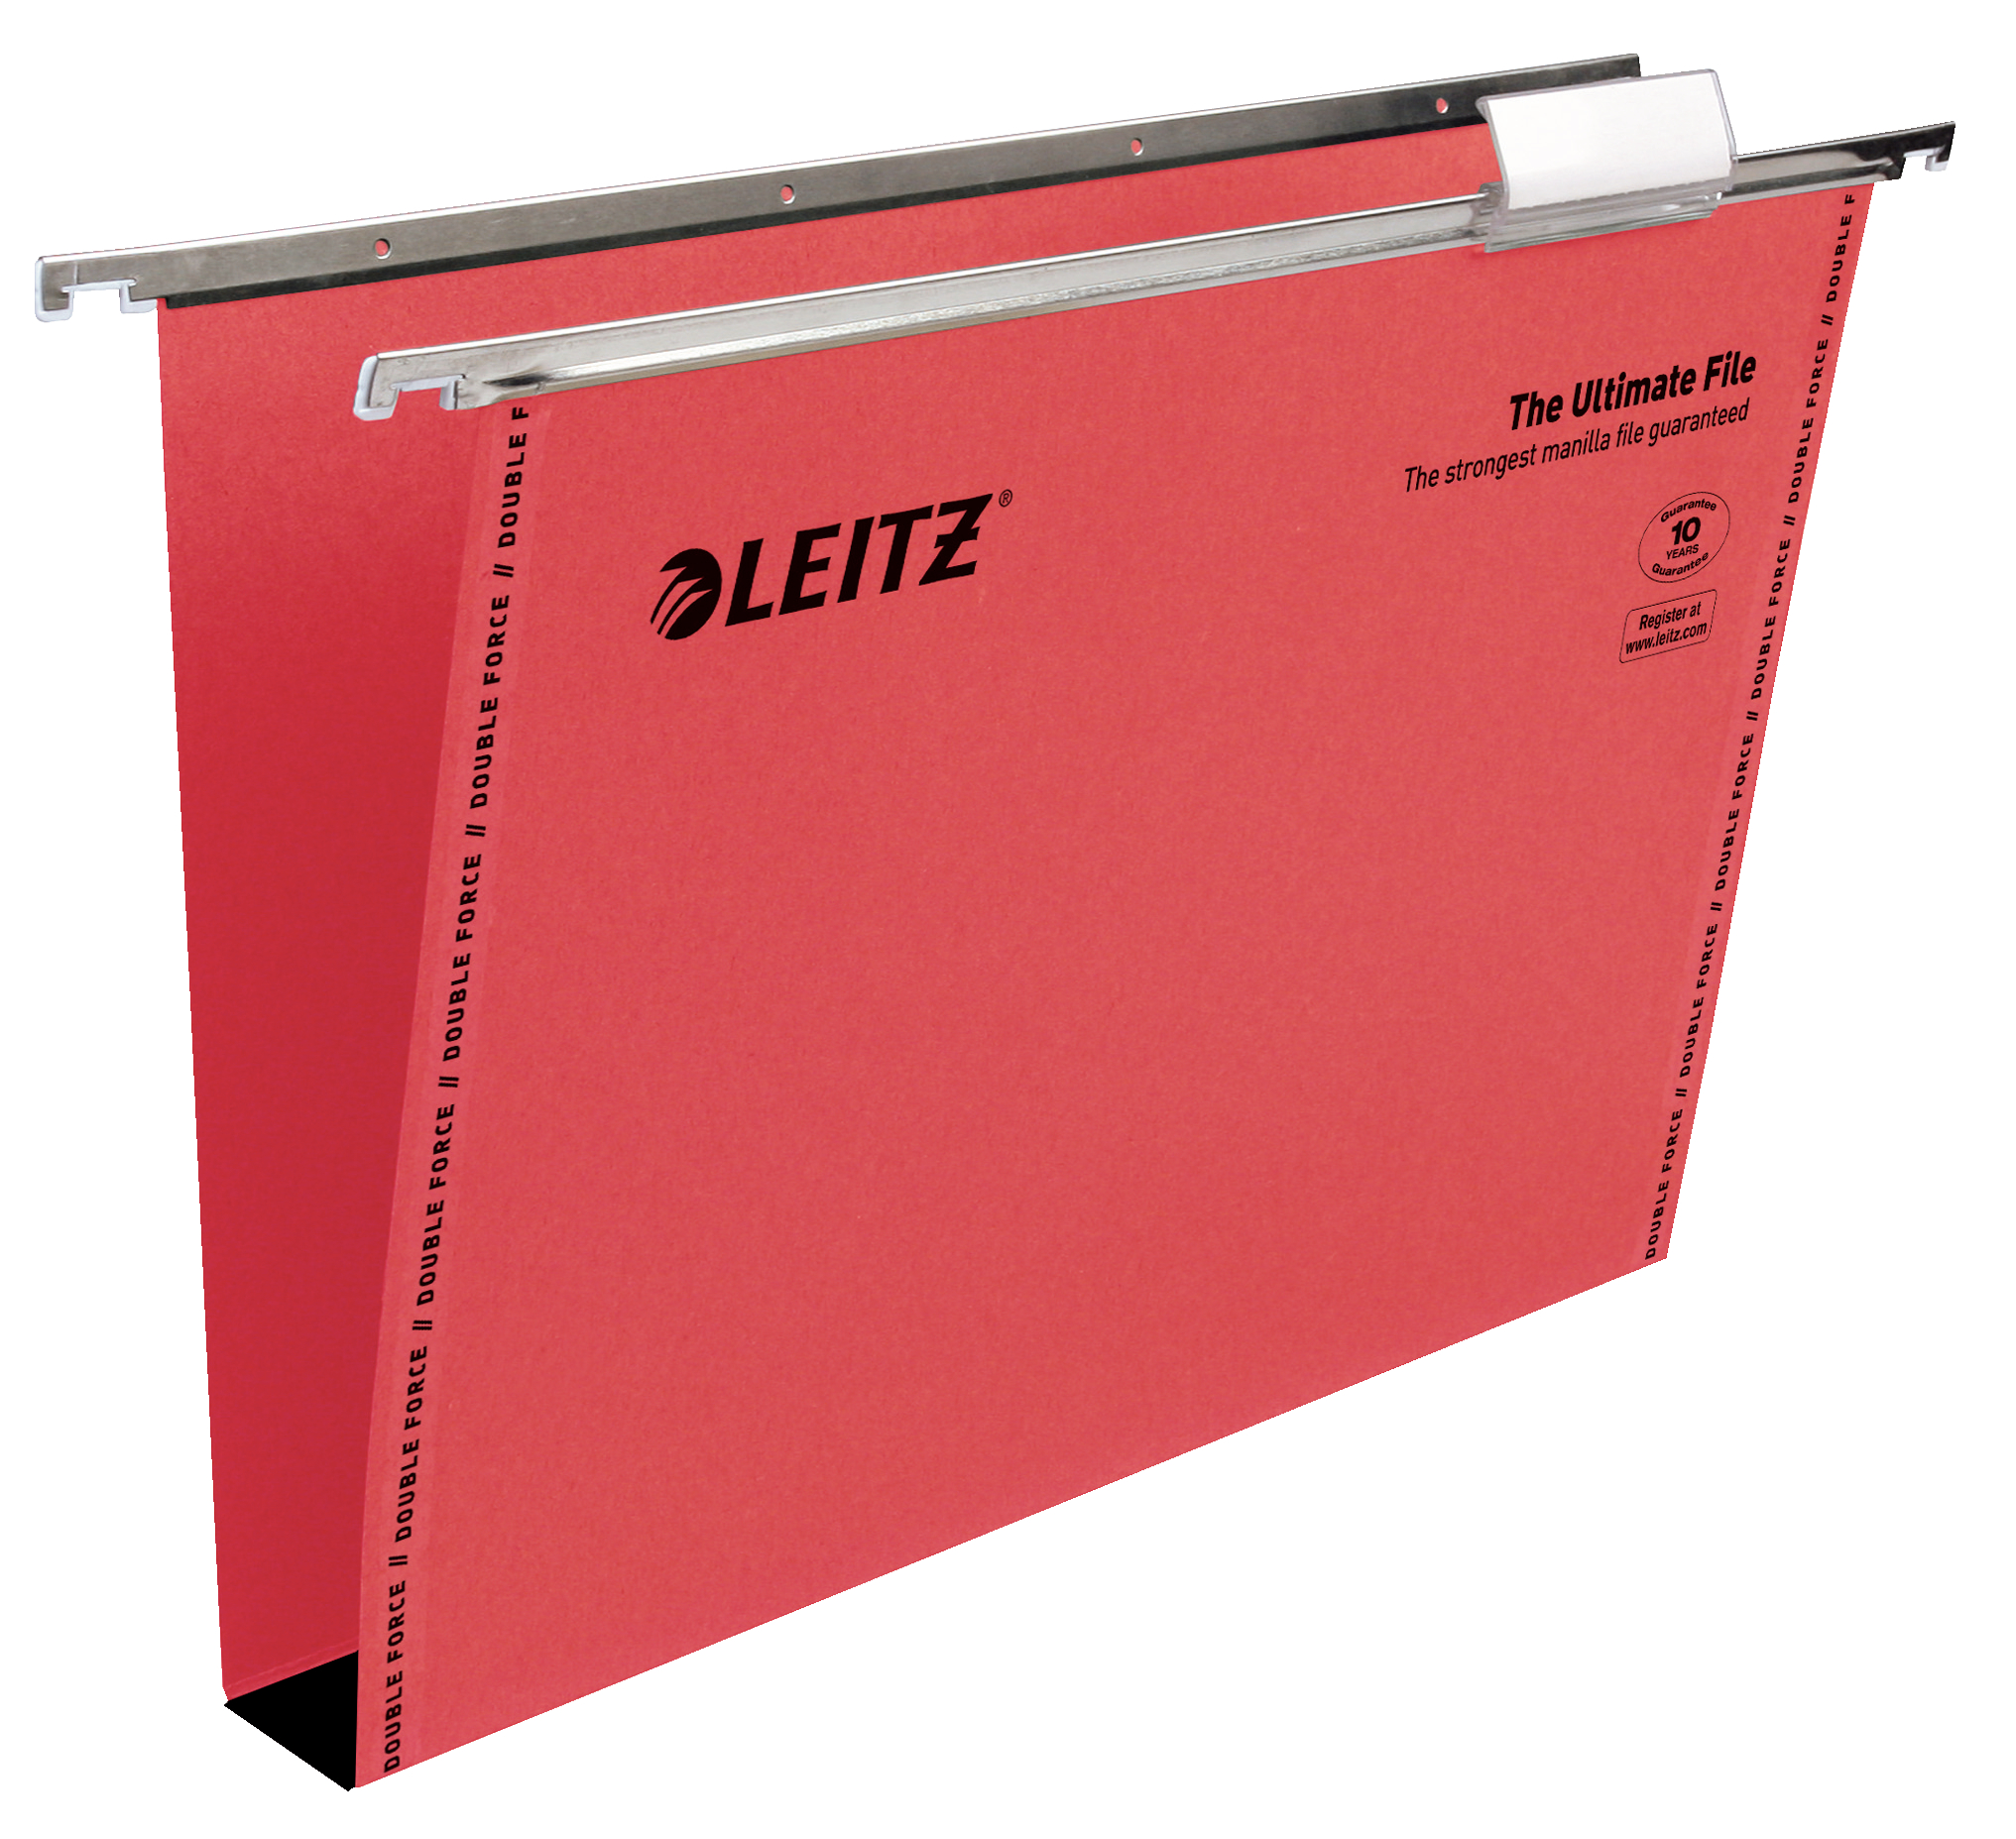 Suspension File Leitz Ultimate Clenched Bar Susp File Foolscap Red BX50